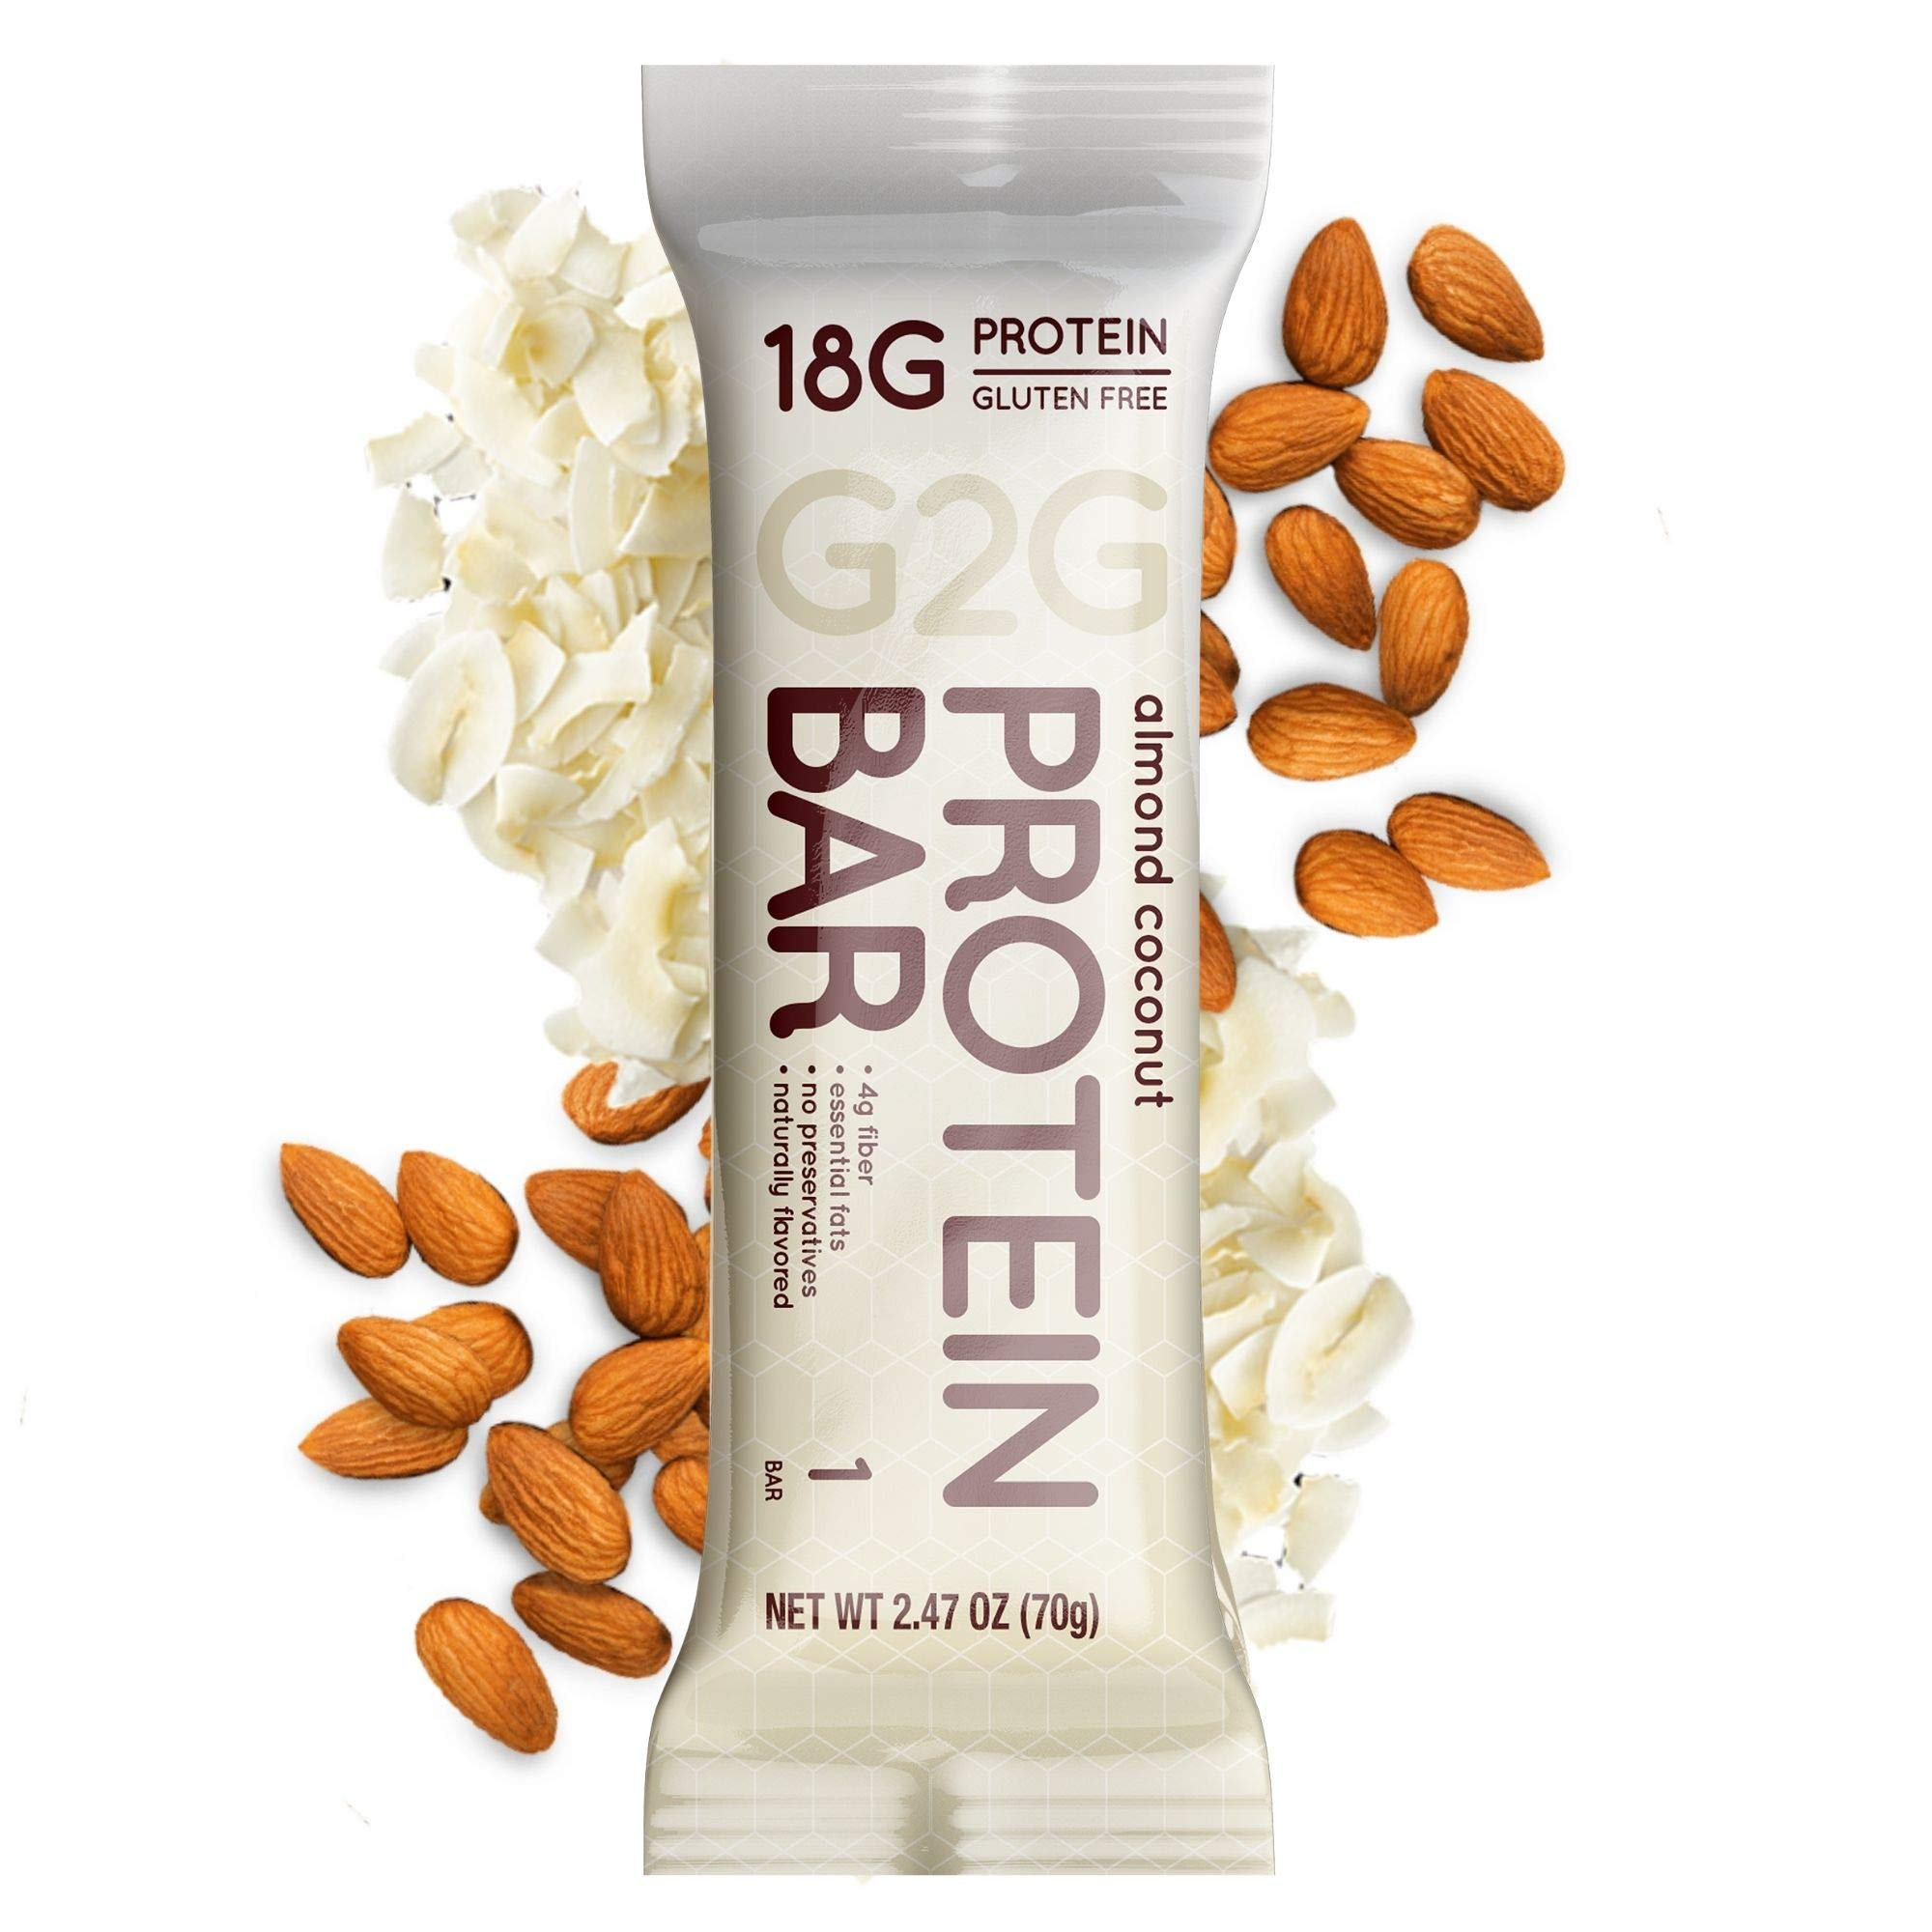 G2G Protein Bar, Almond Coconut, Healthy Snack, Delicious Meal Replacement, Gluten-Free, Clean Ingredients, Refrigerated for Freshness, 8 Count (Pack of 8)